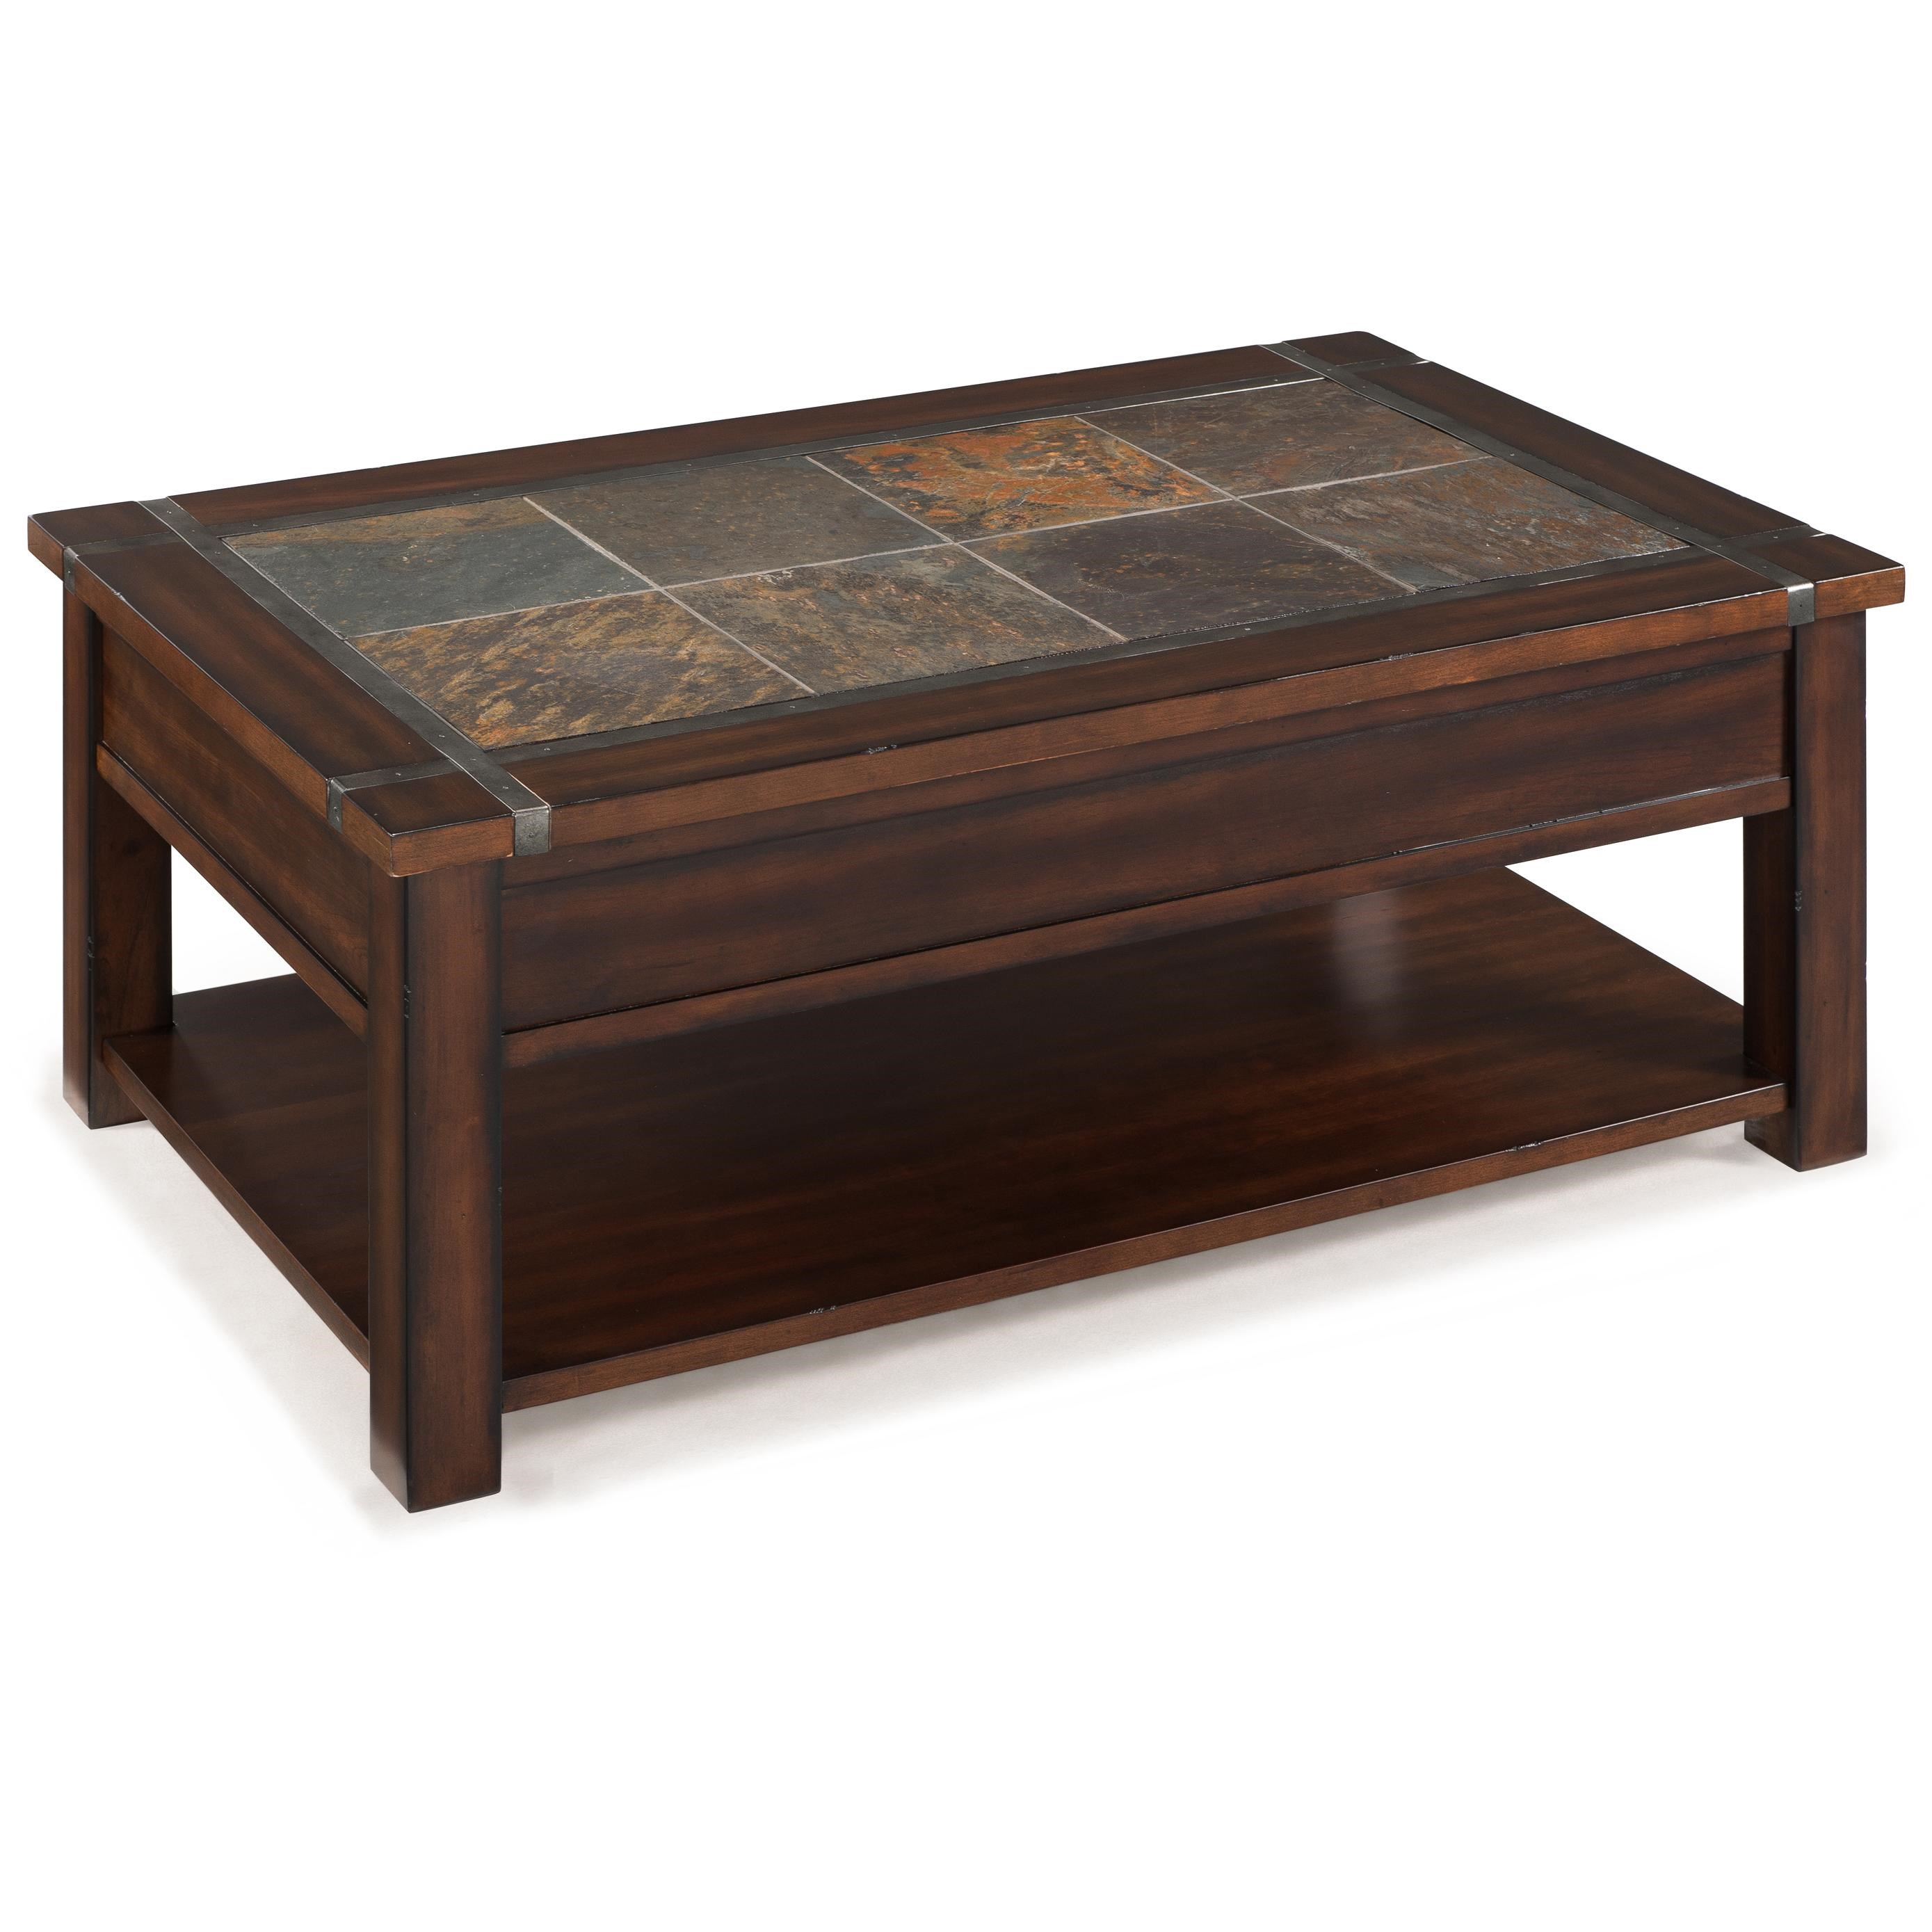 Roanoke Furniture Stores Home Roanoke Rectangular Lift Top Cocktail Table | Hudson's Furniture ...